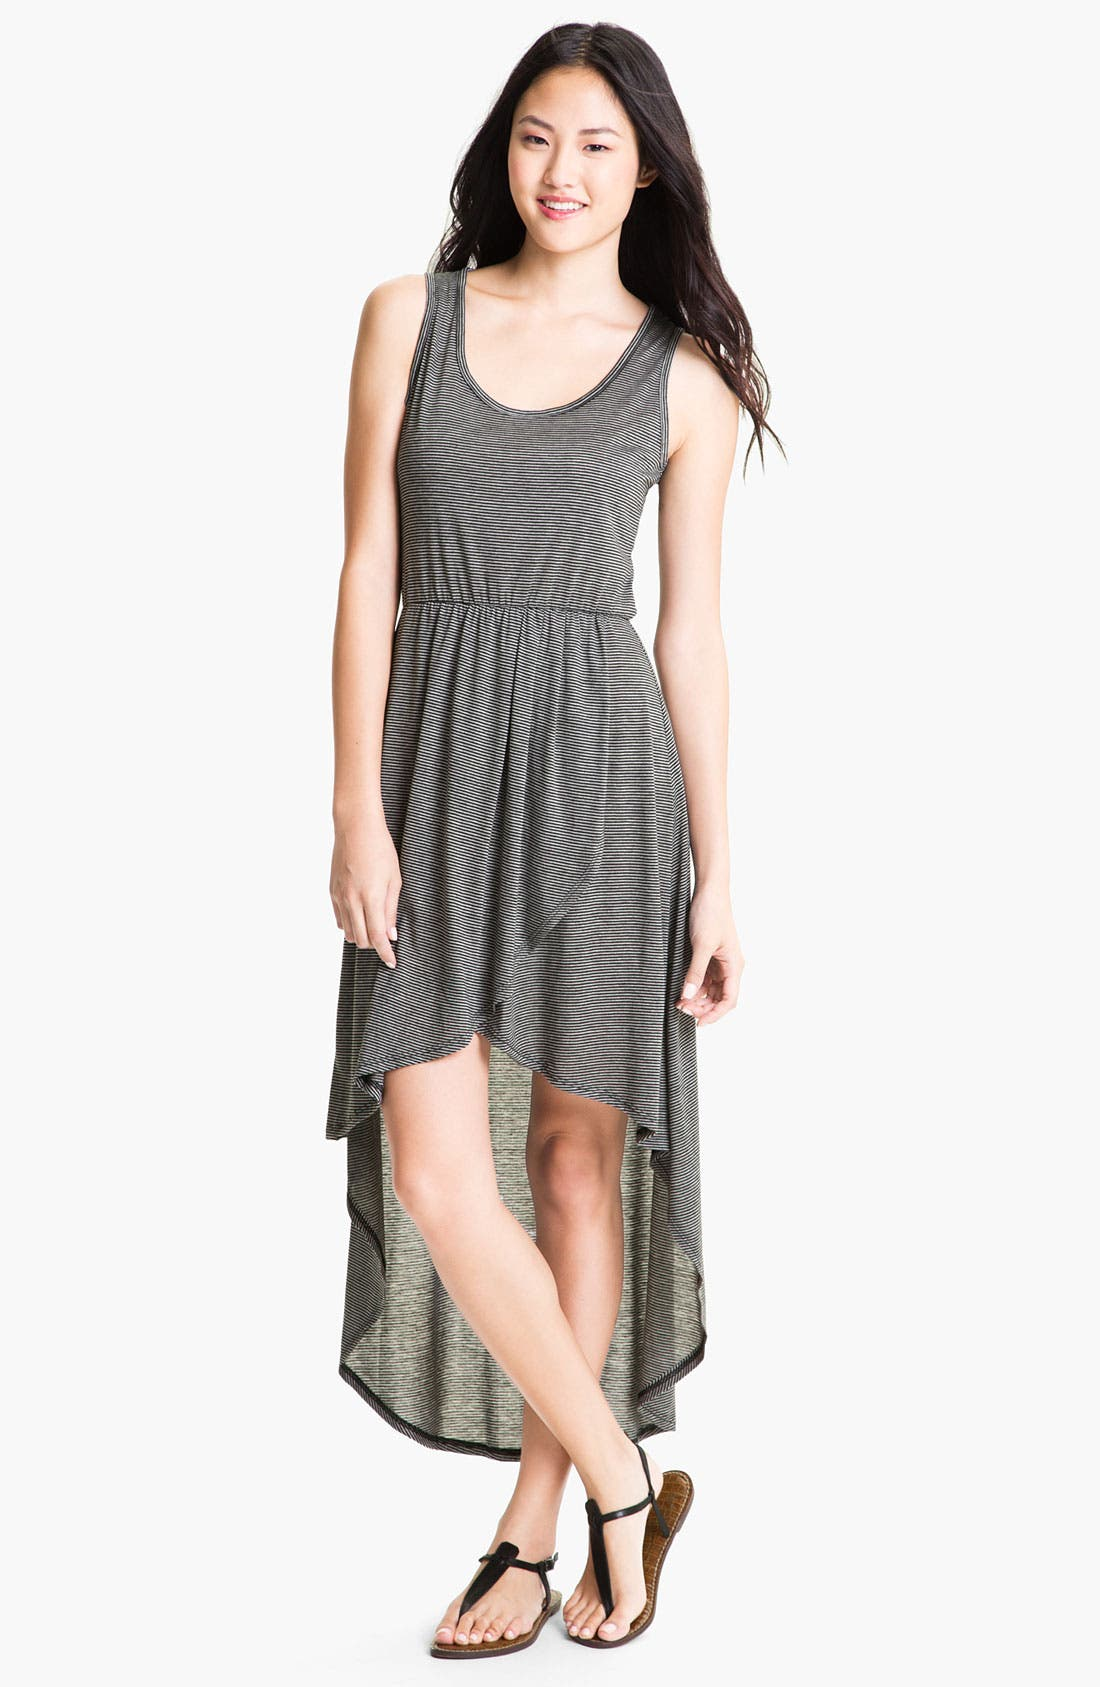 Alternate Image 1 Selected - Loveappella High Low Maxi Dress (Petite)